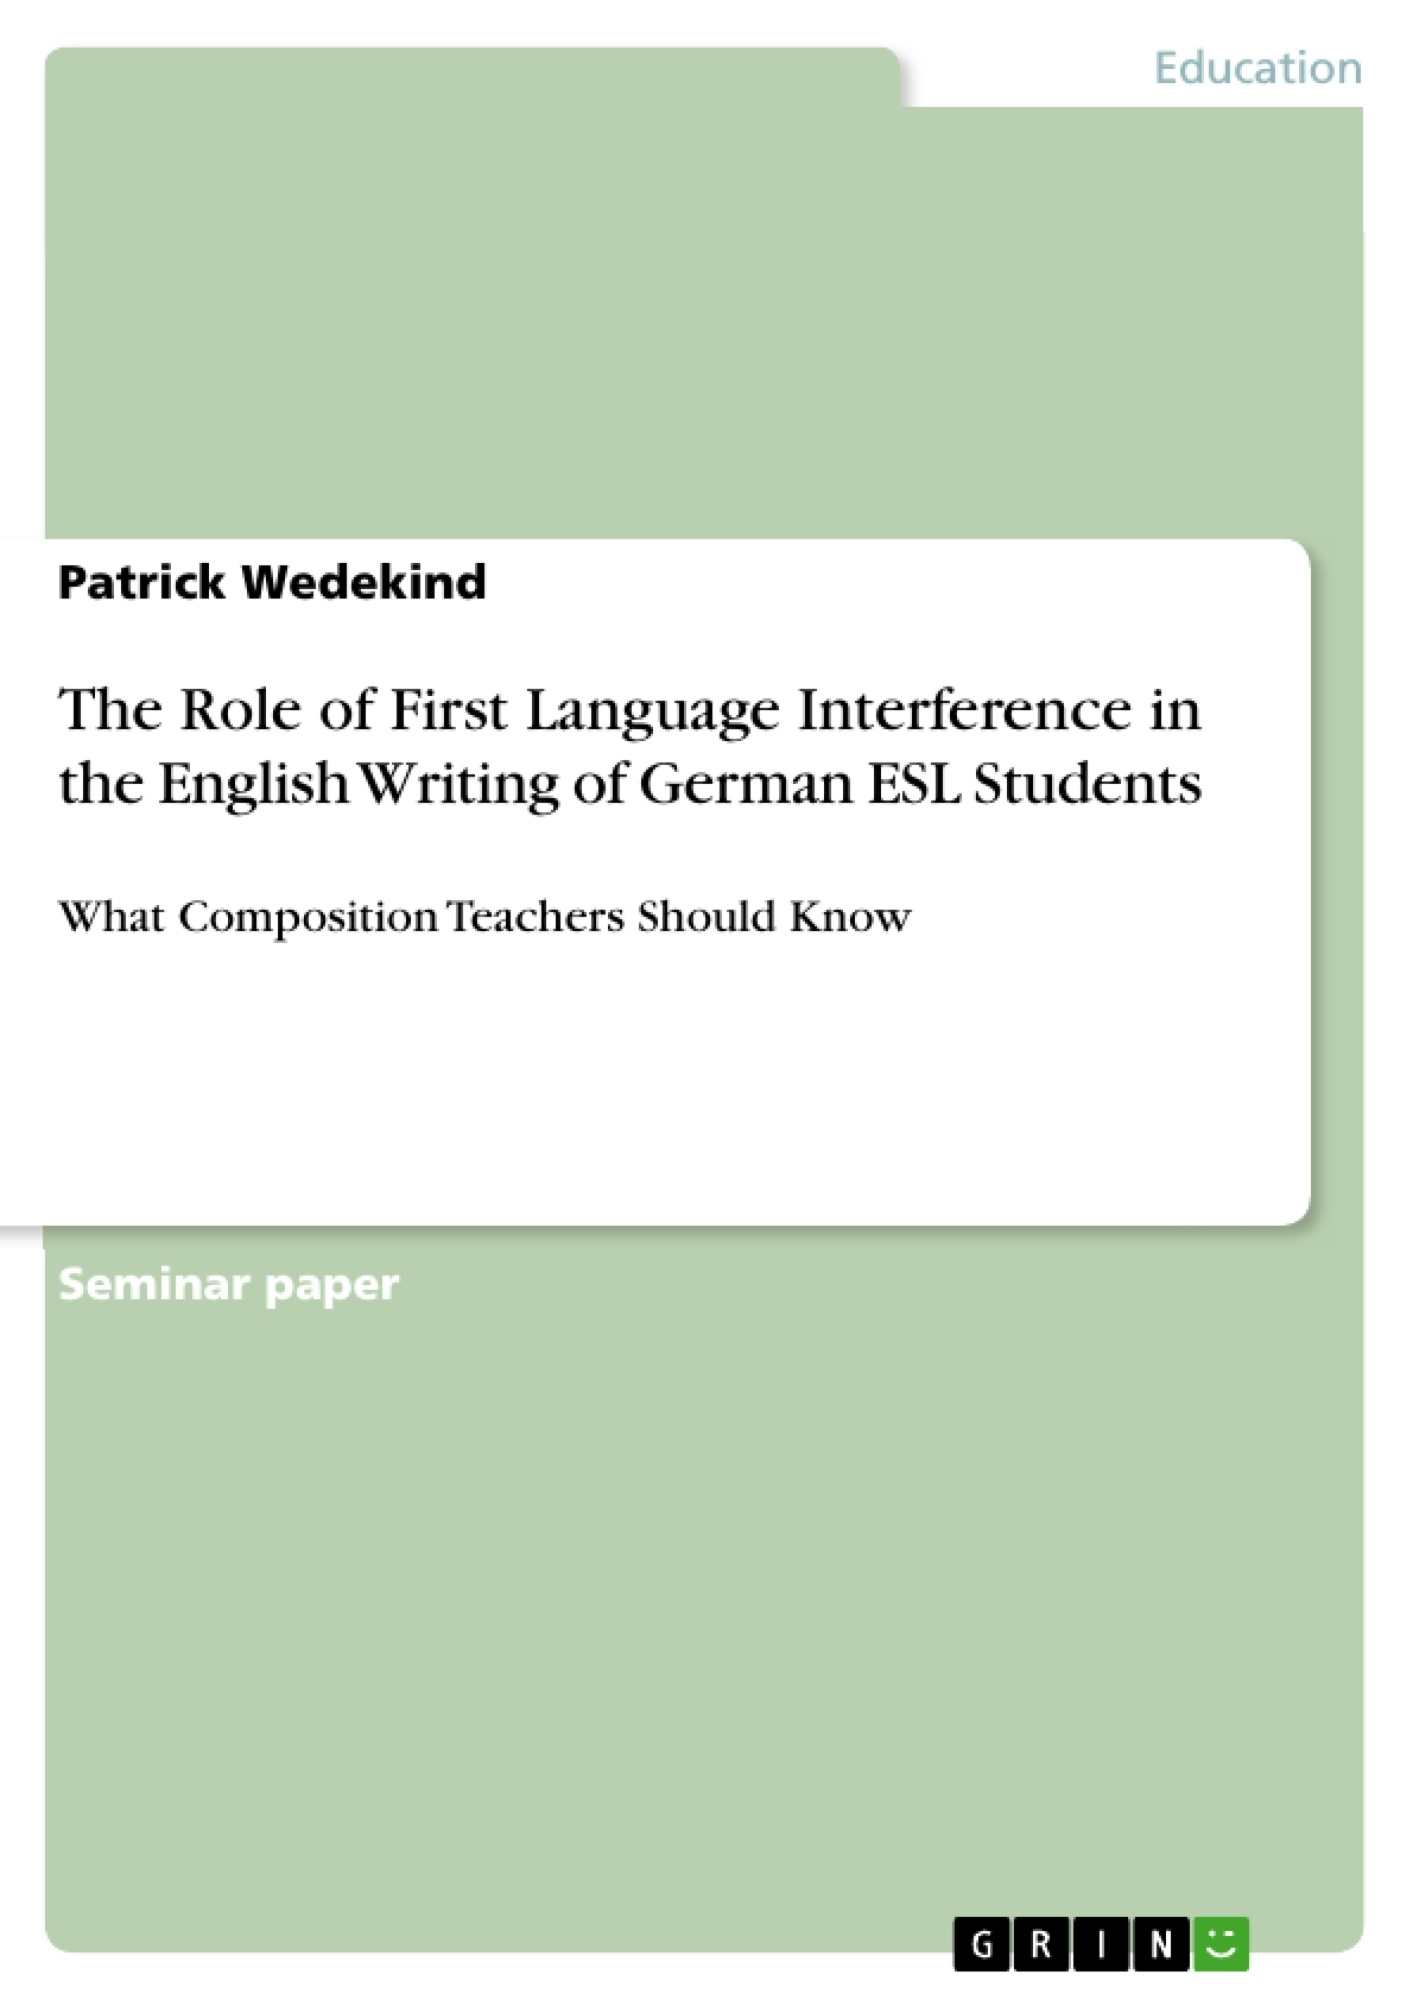 Title: The Role of First Language Interference in the English Writing of German ESL Students